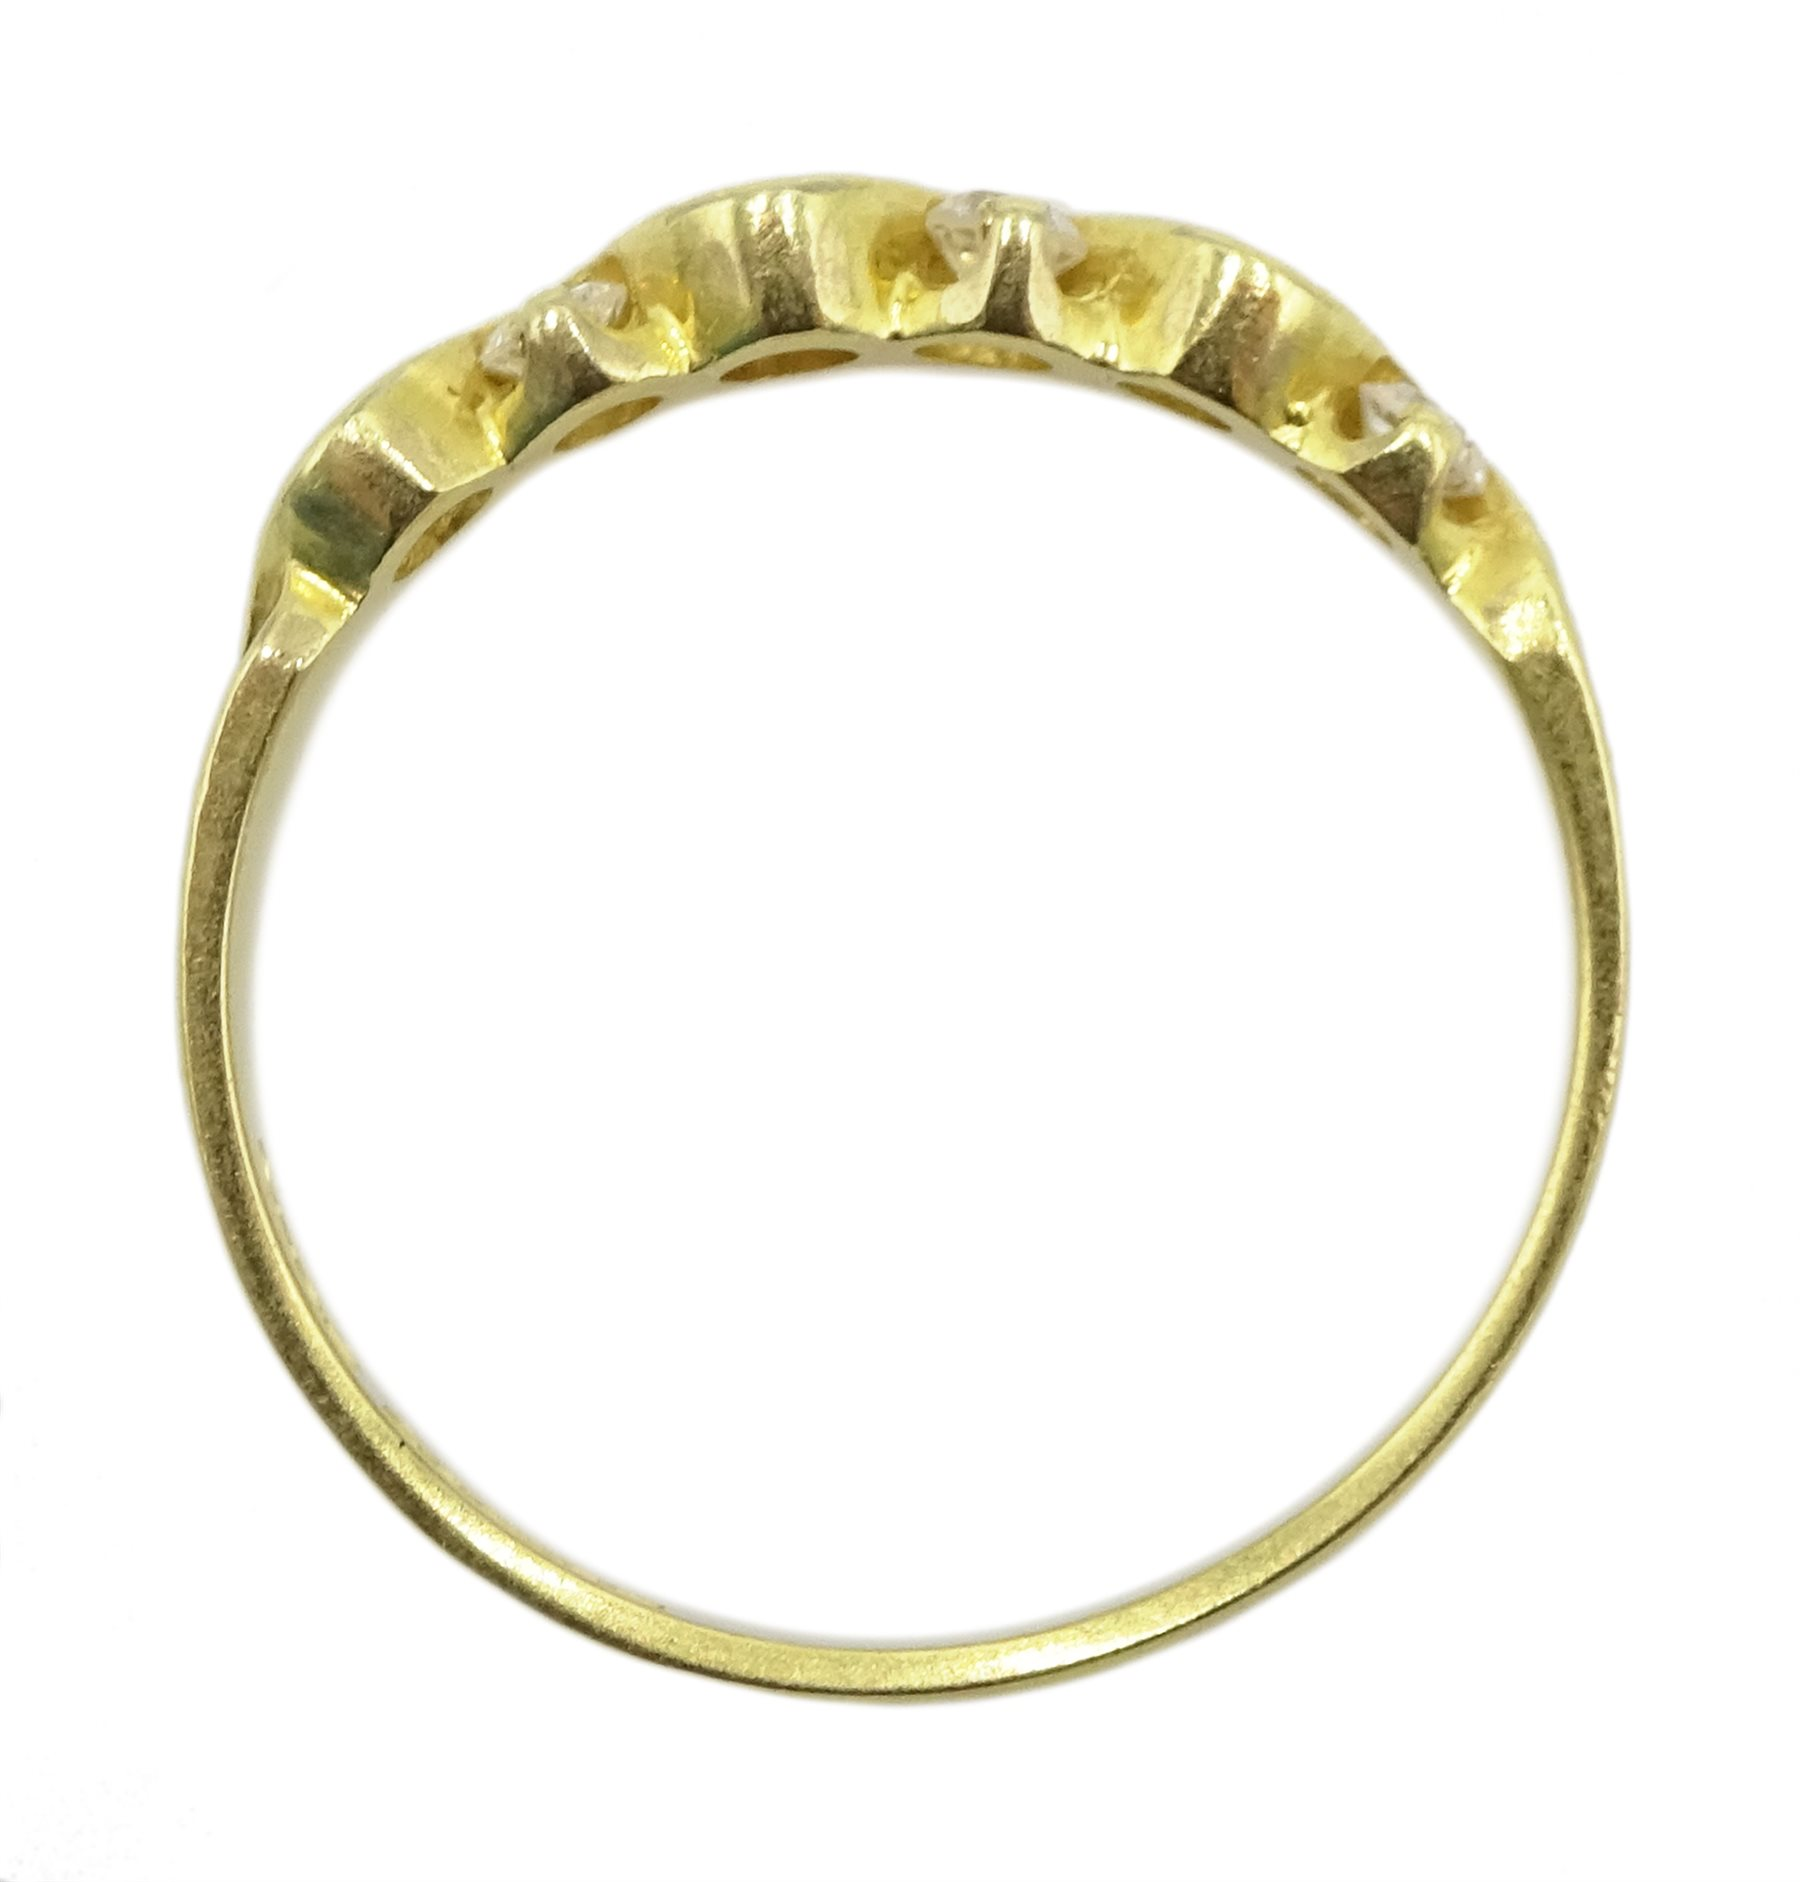 18ct gold seven stone diamond, weave design ring, London import marks 1994, total diamond weight 0.2 - Image 4 of 4